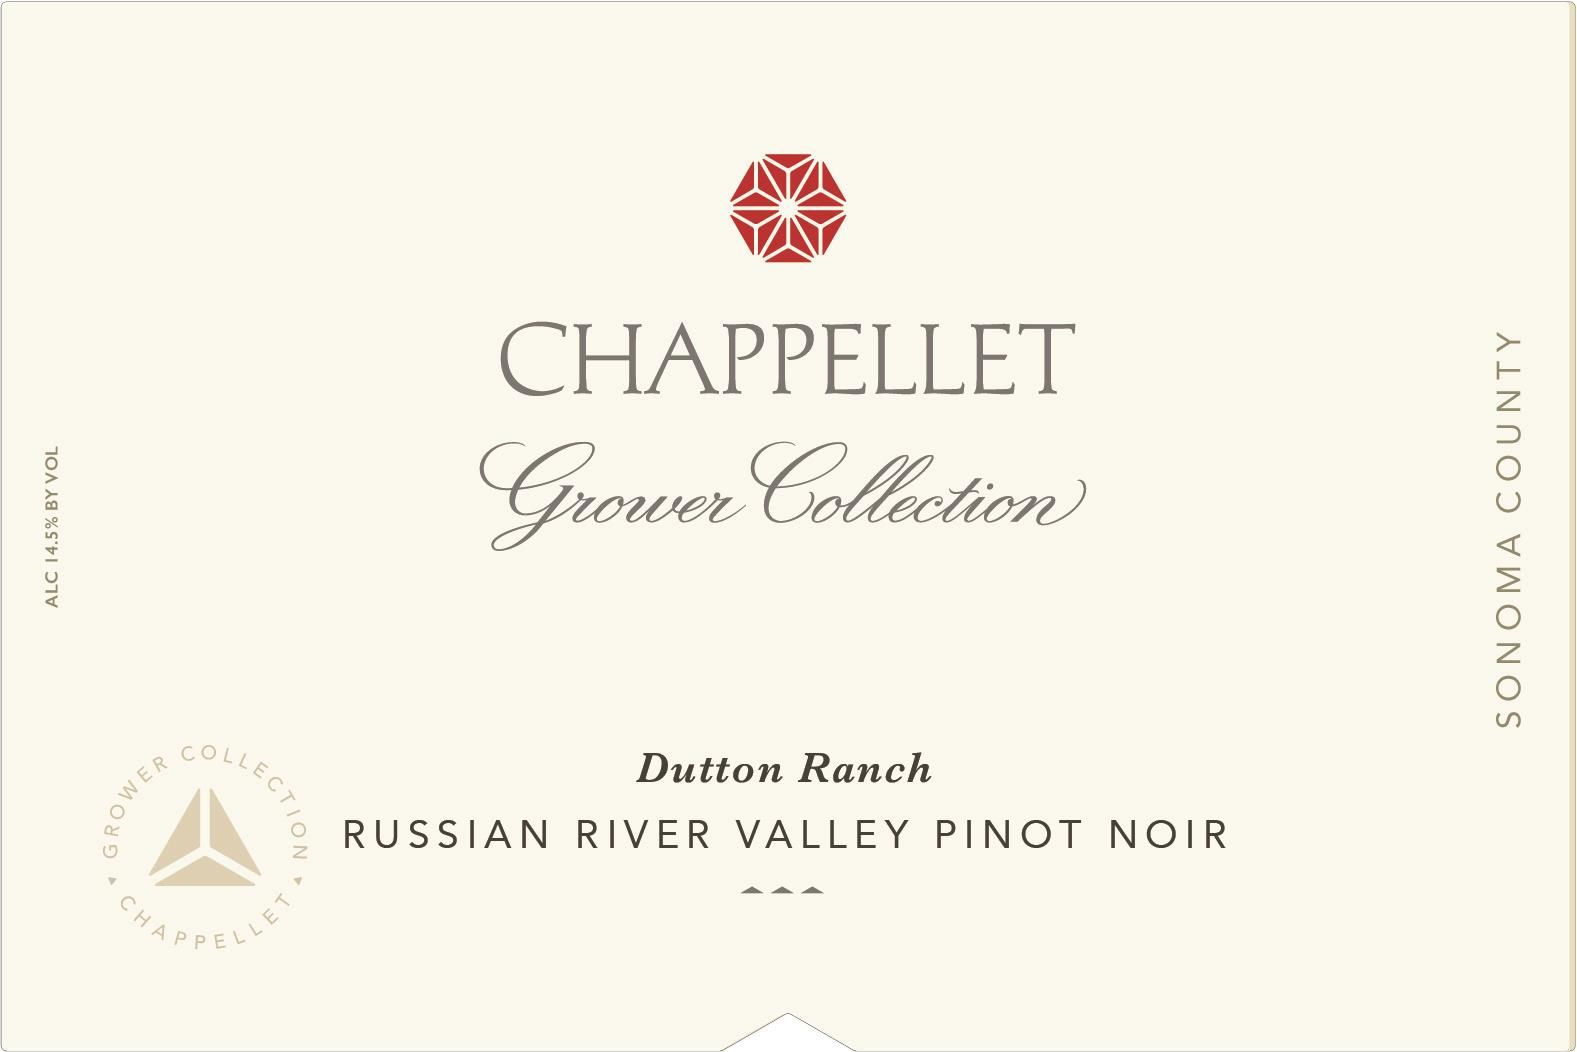 Chappellet Grower Collection Dutton Ranch Pinot Noir 2018  Front Label